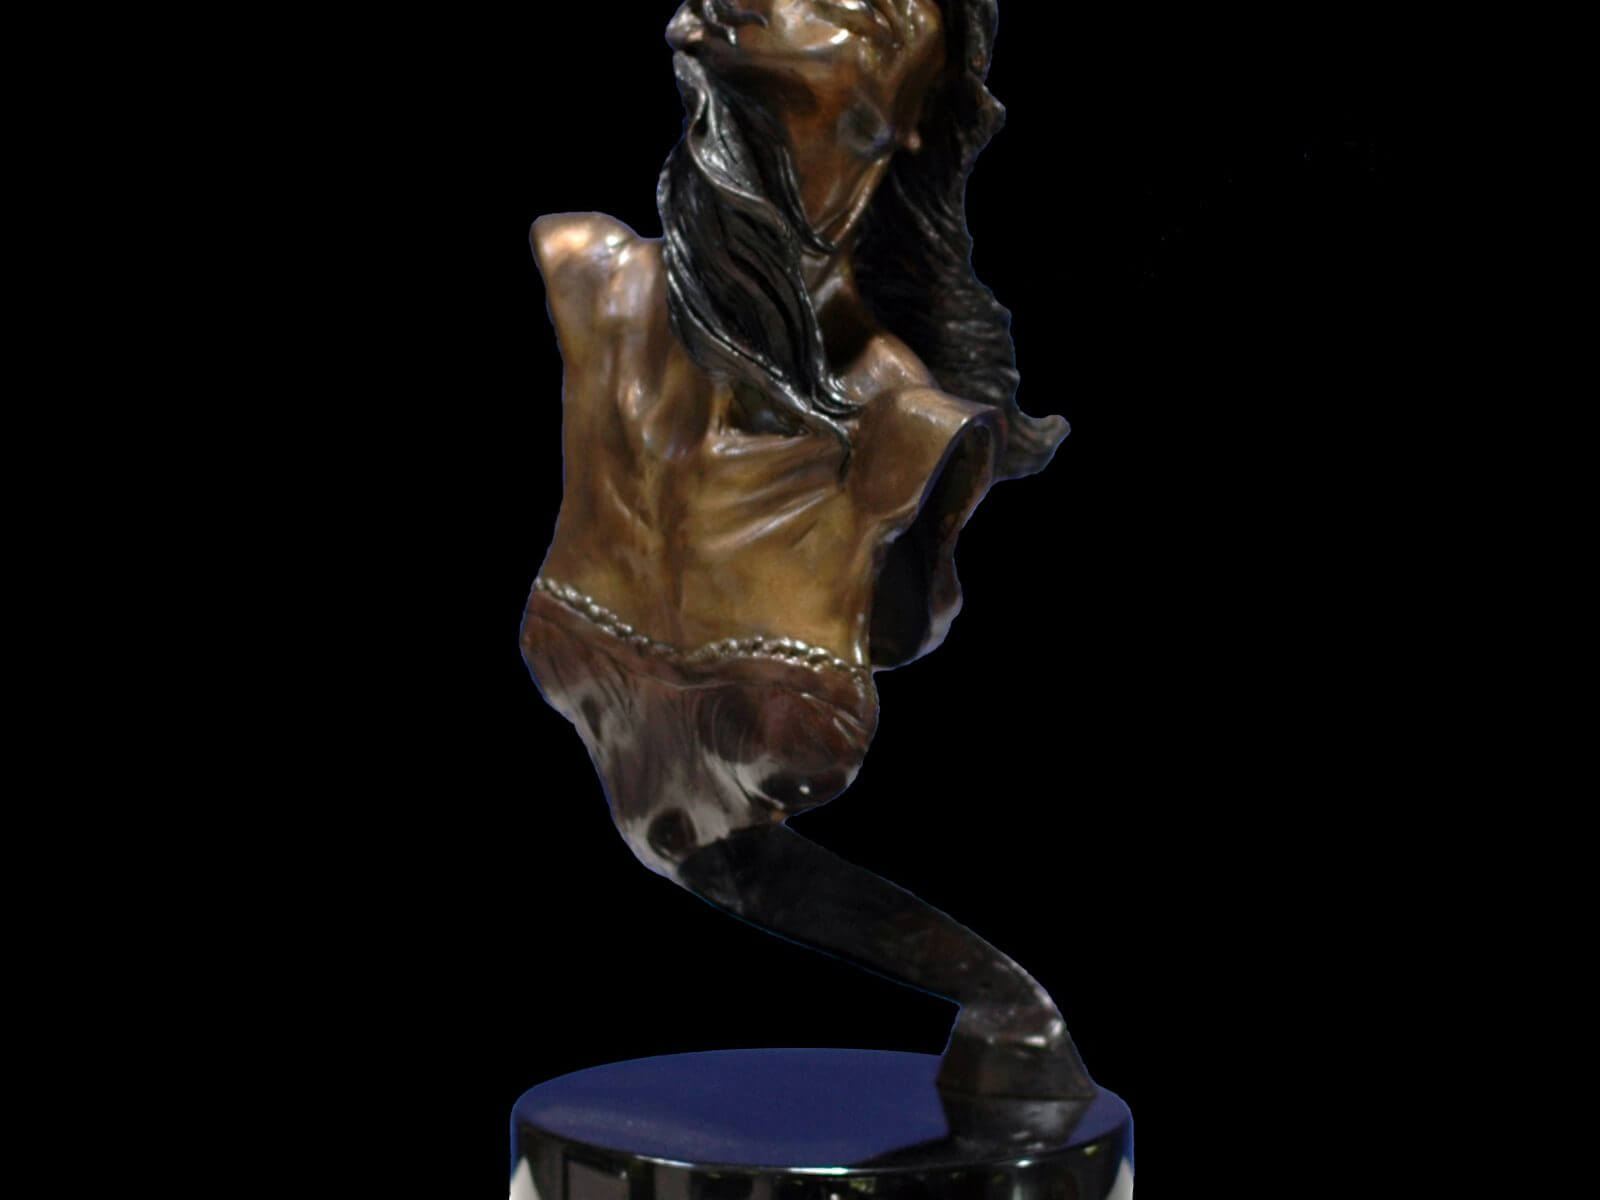 Heather a female bust of ballet dancer Heather Jurgensen a figurative medium size dance sculpture by Andrew DeVries